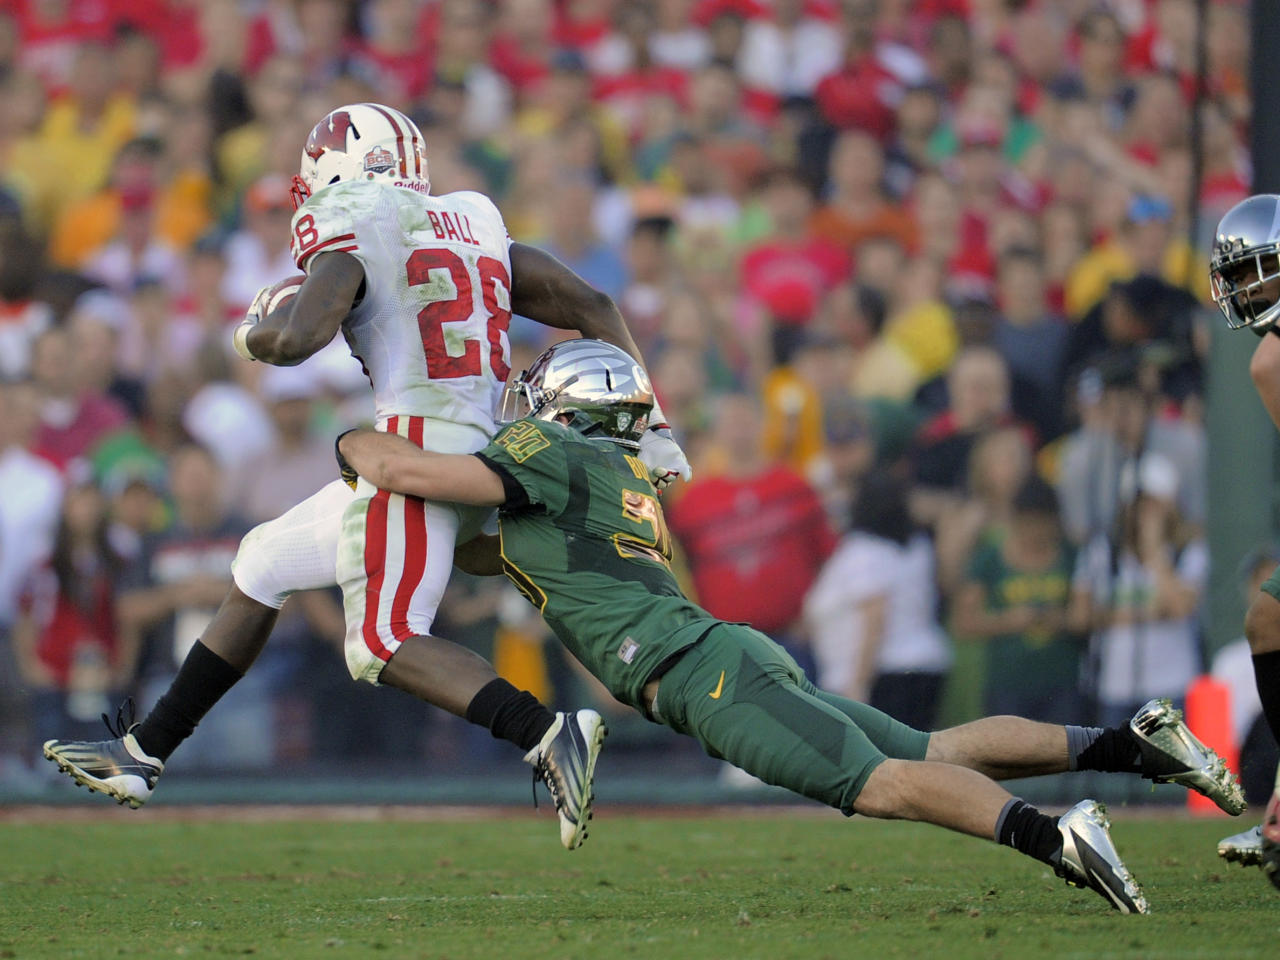 Oregon's John Boyett (20) stops Wisconsin running back, Montee Ball (28) during the second half of the Rose Bowl NCAA college football game, Monday, Jan. 2, 2012, in Pasadena, Calif. (AP Photo/Mark J. Terrill)